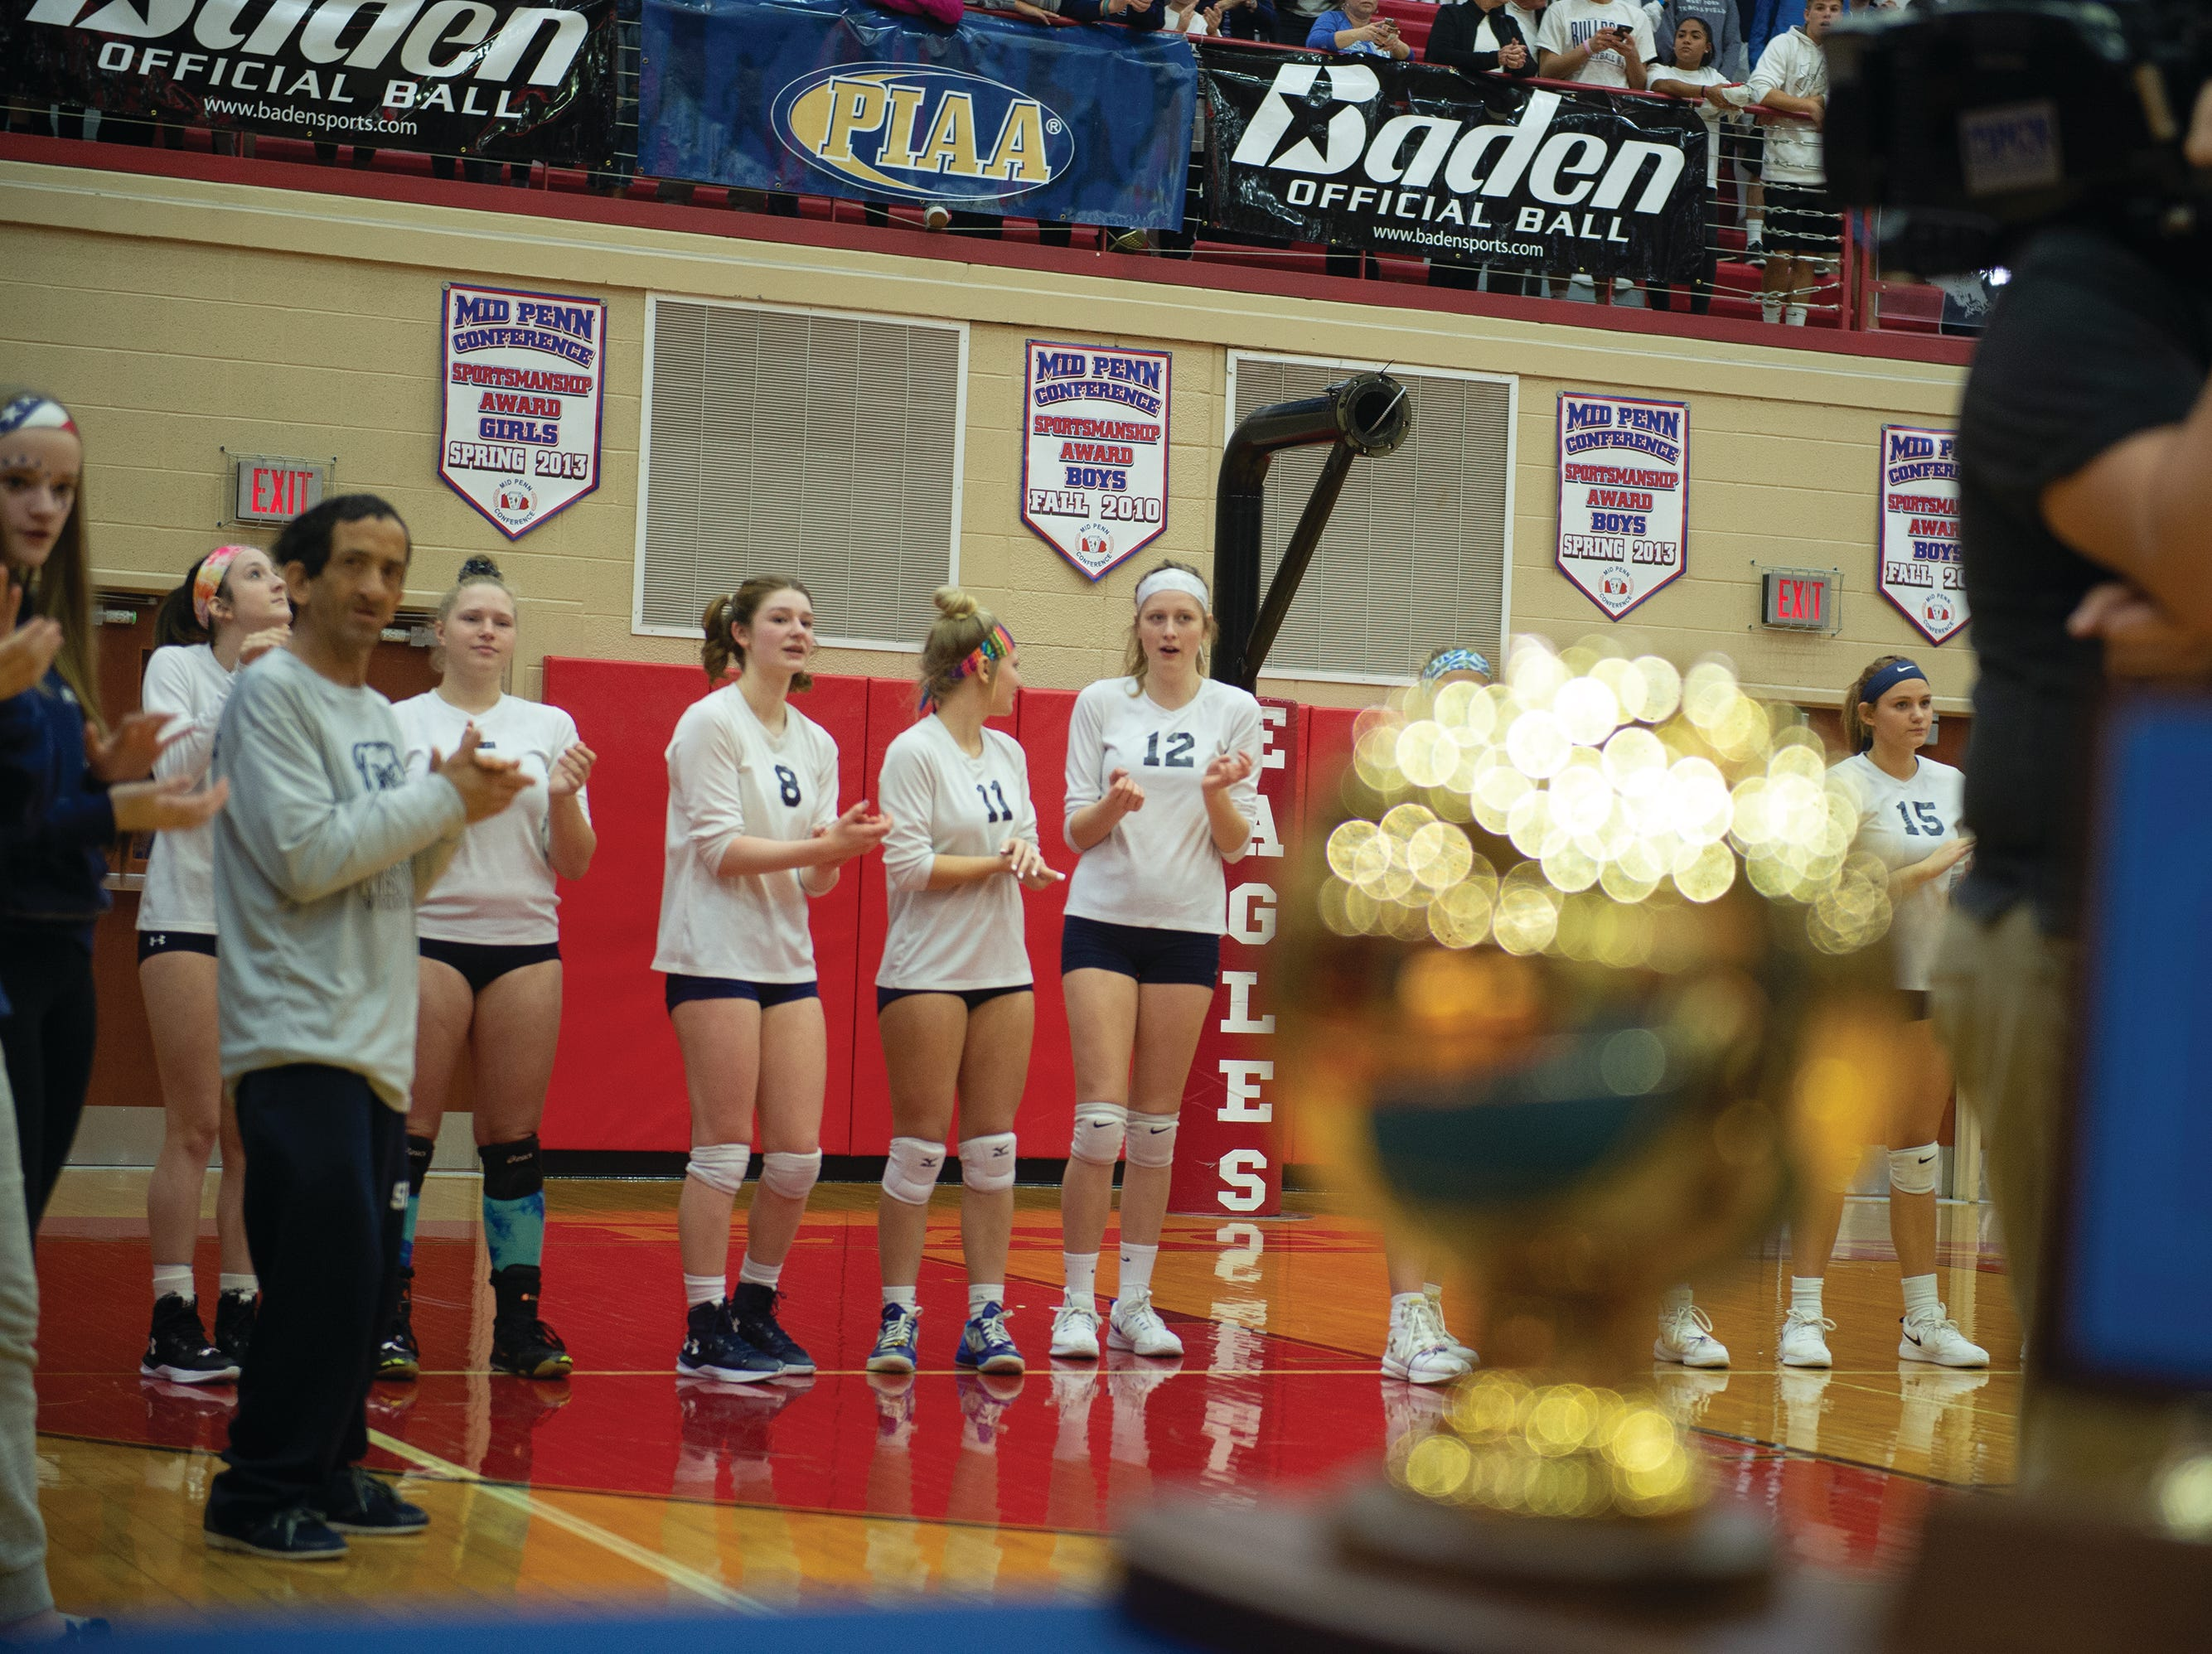 The West York girls' volleyball team waits to receive their gold medals and the PIAA Class 3A championship trophy (foreground).